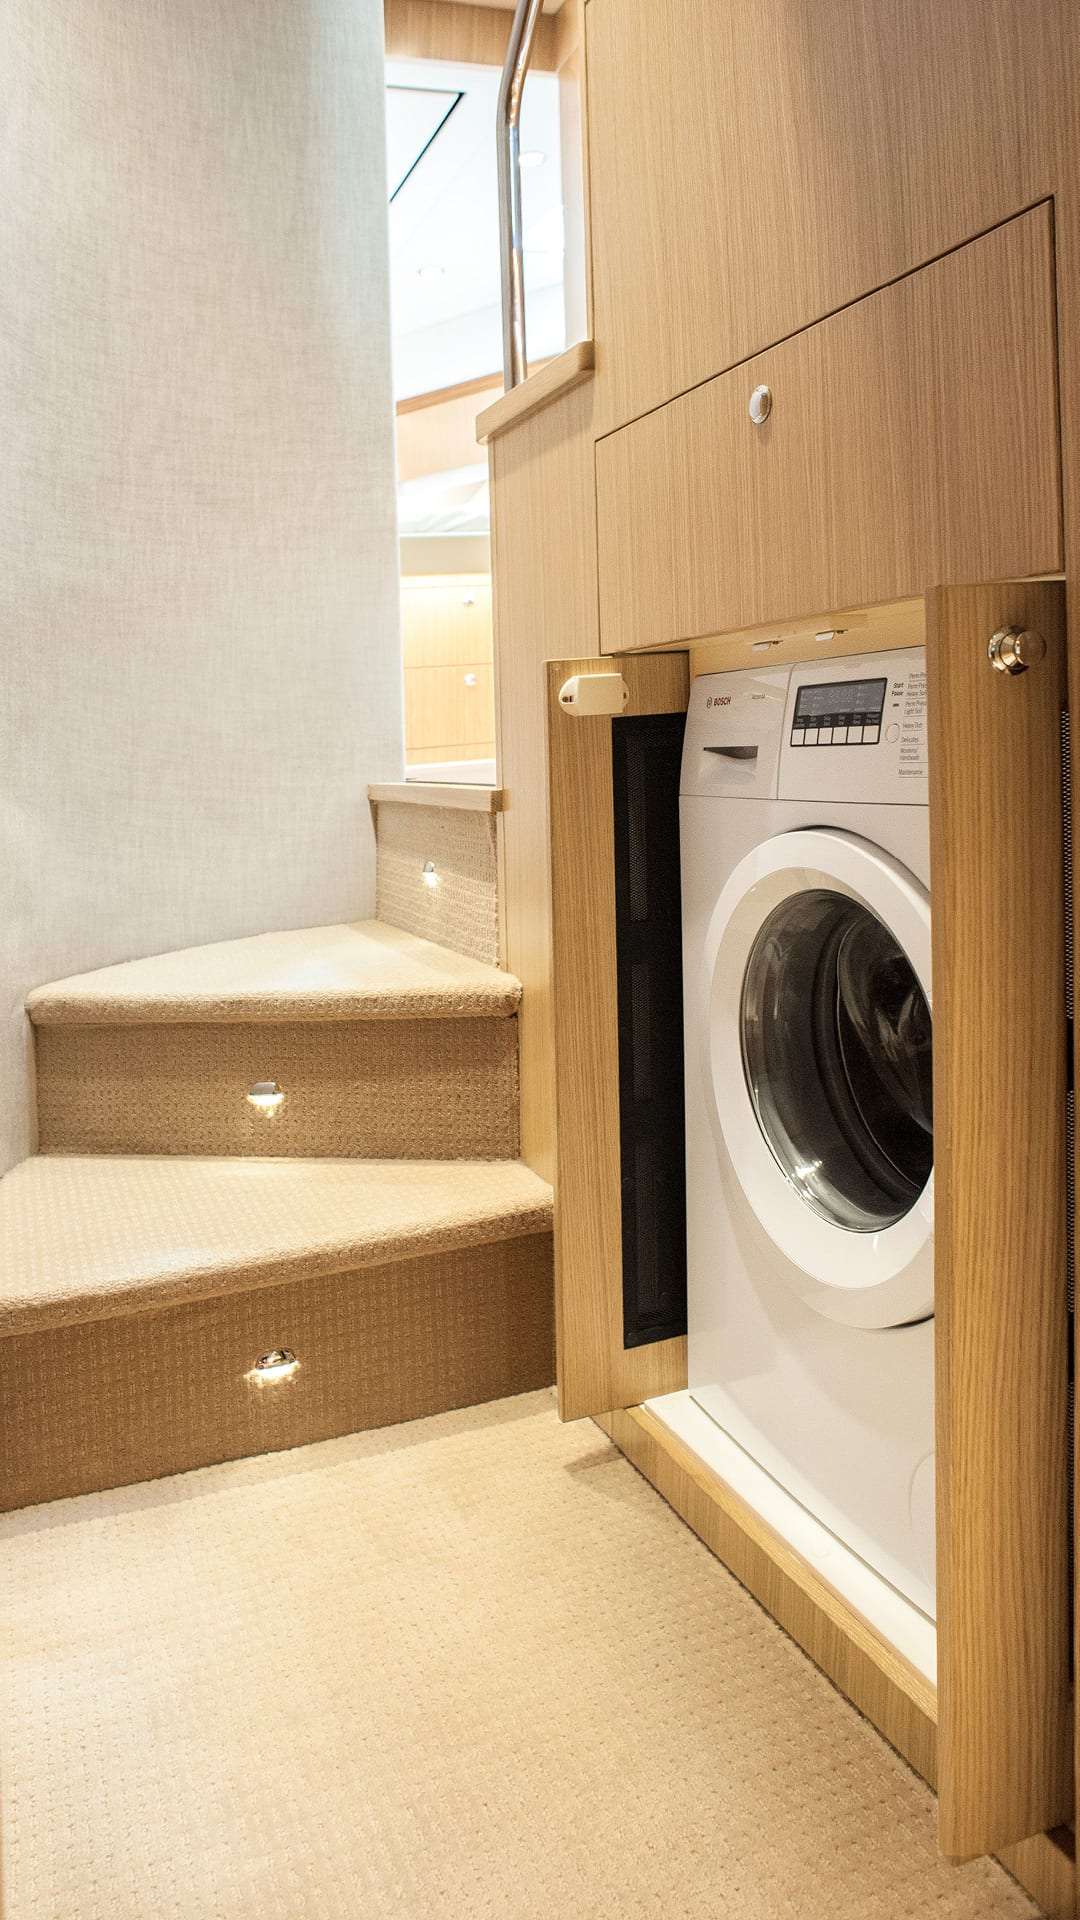 Riviera 575 SUV Laundry 02 – Satin Oak Timber Finish